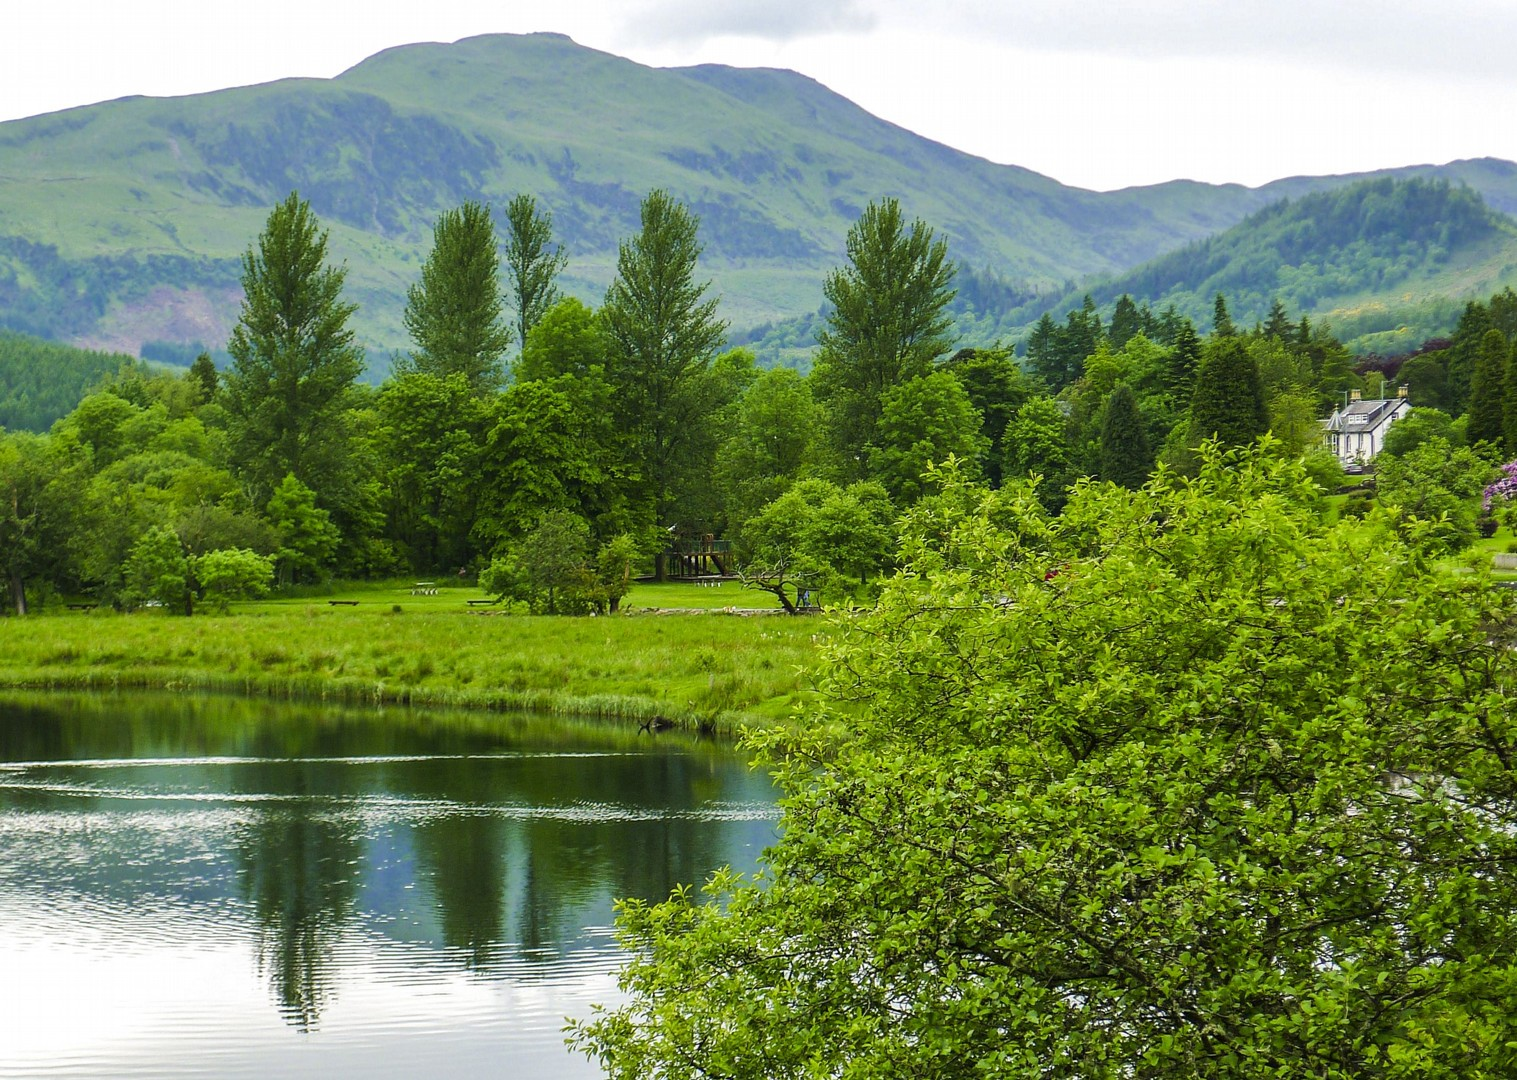 scottish-cycling-mountains-lakes-rivers-whiskey-distillery-bike-holiday.jpg - UK - Scotland - Lochs and Glens - Leisure Cycling